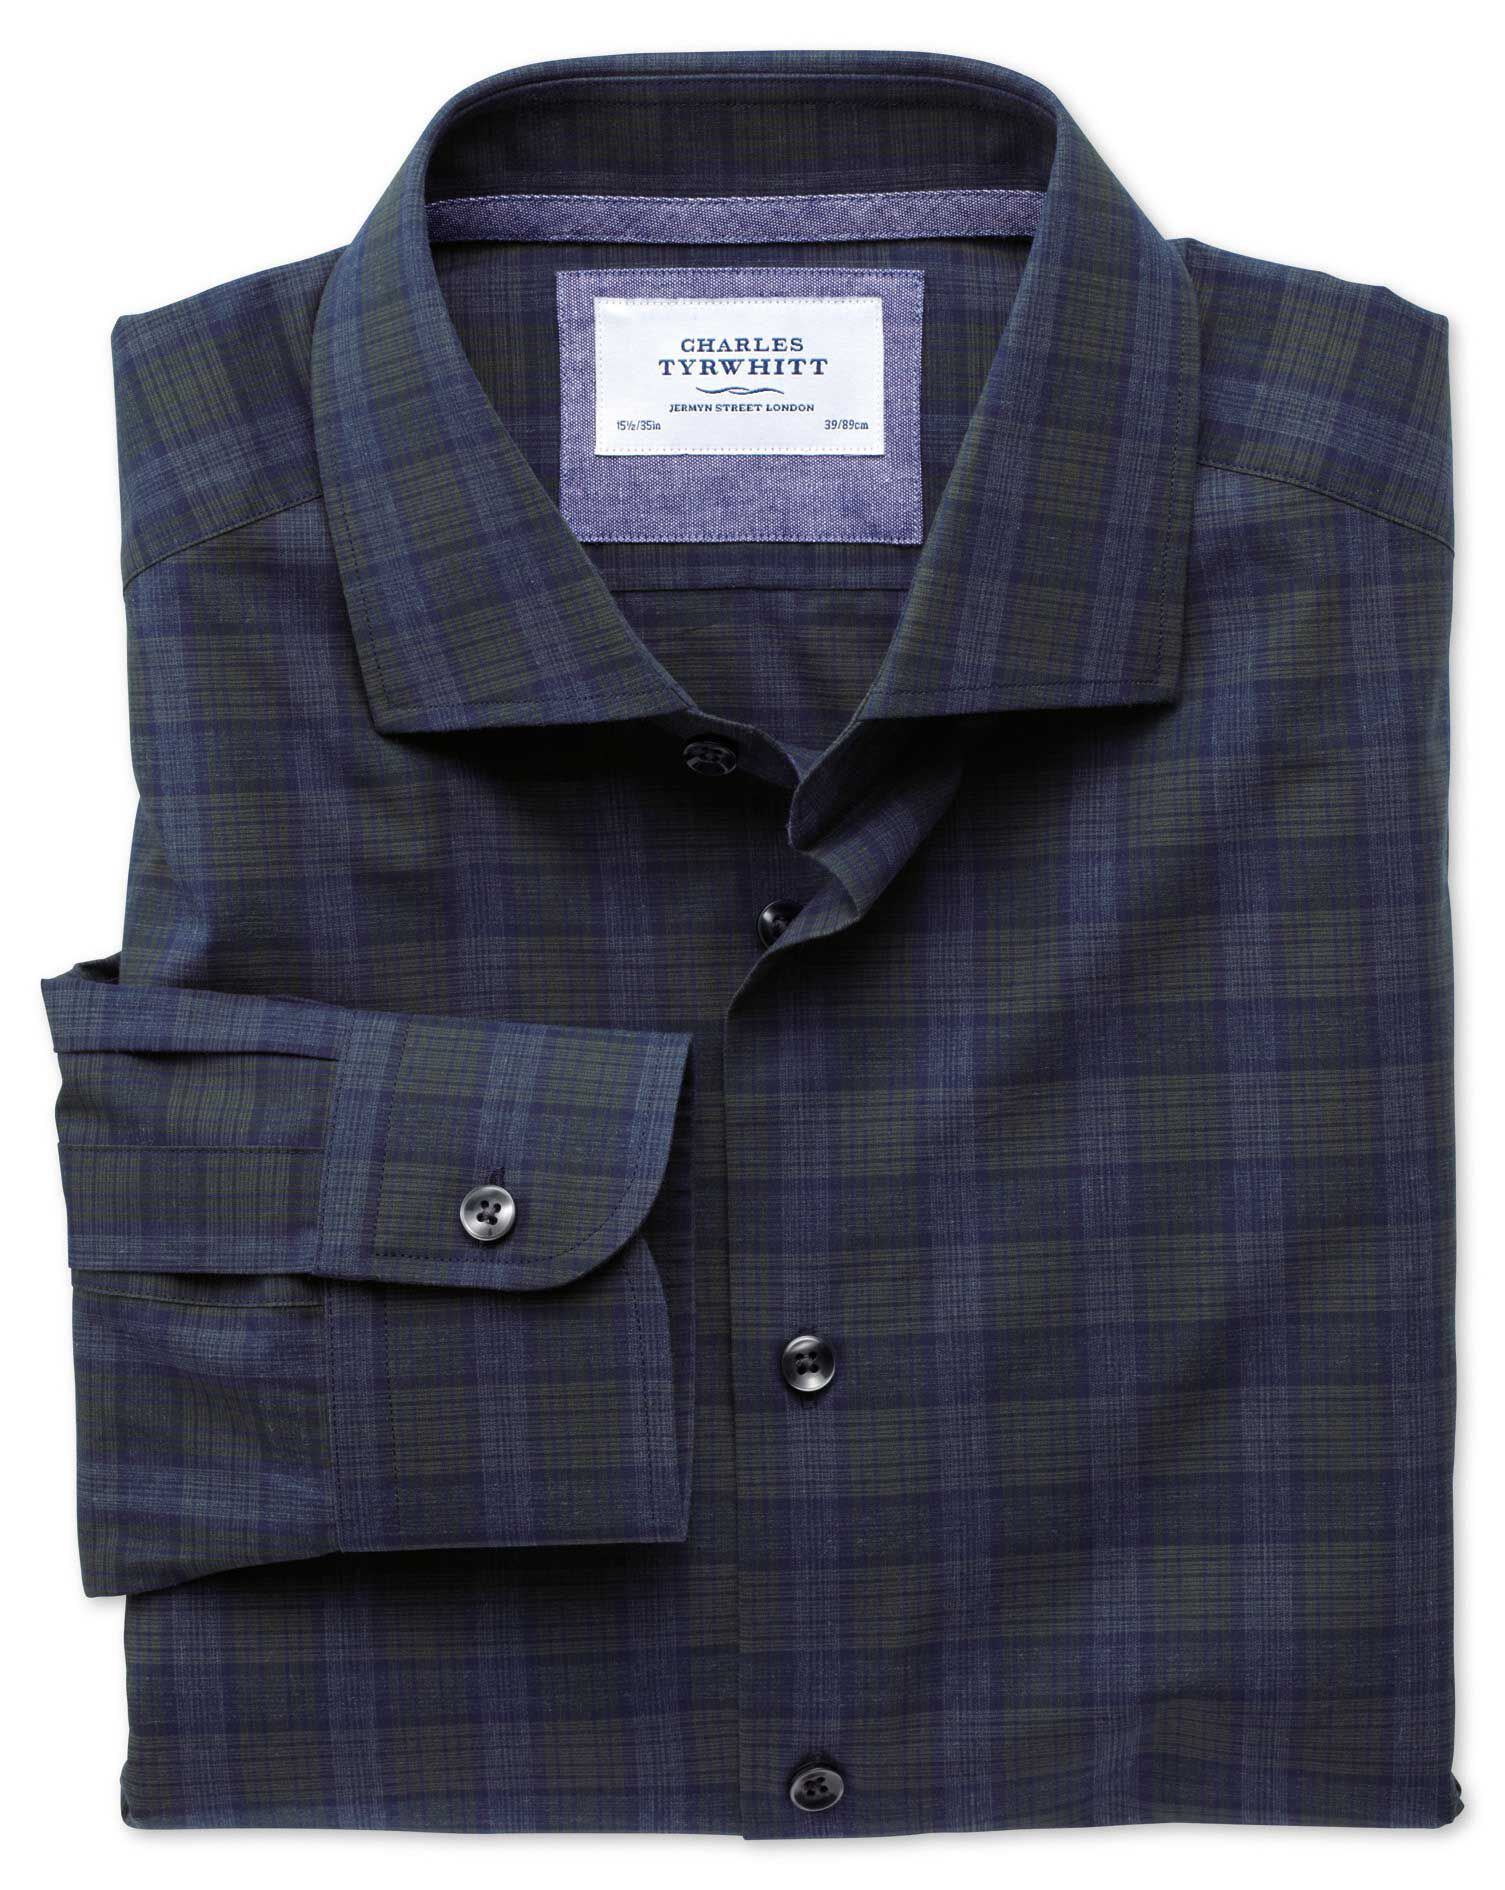 Extra Slim Fit Semi-Cutaway Collar Business Casual Melange Navy and Green Check Egyptian Cotton Form